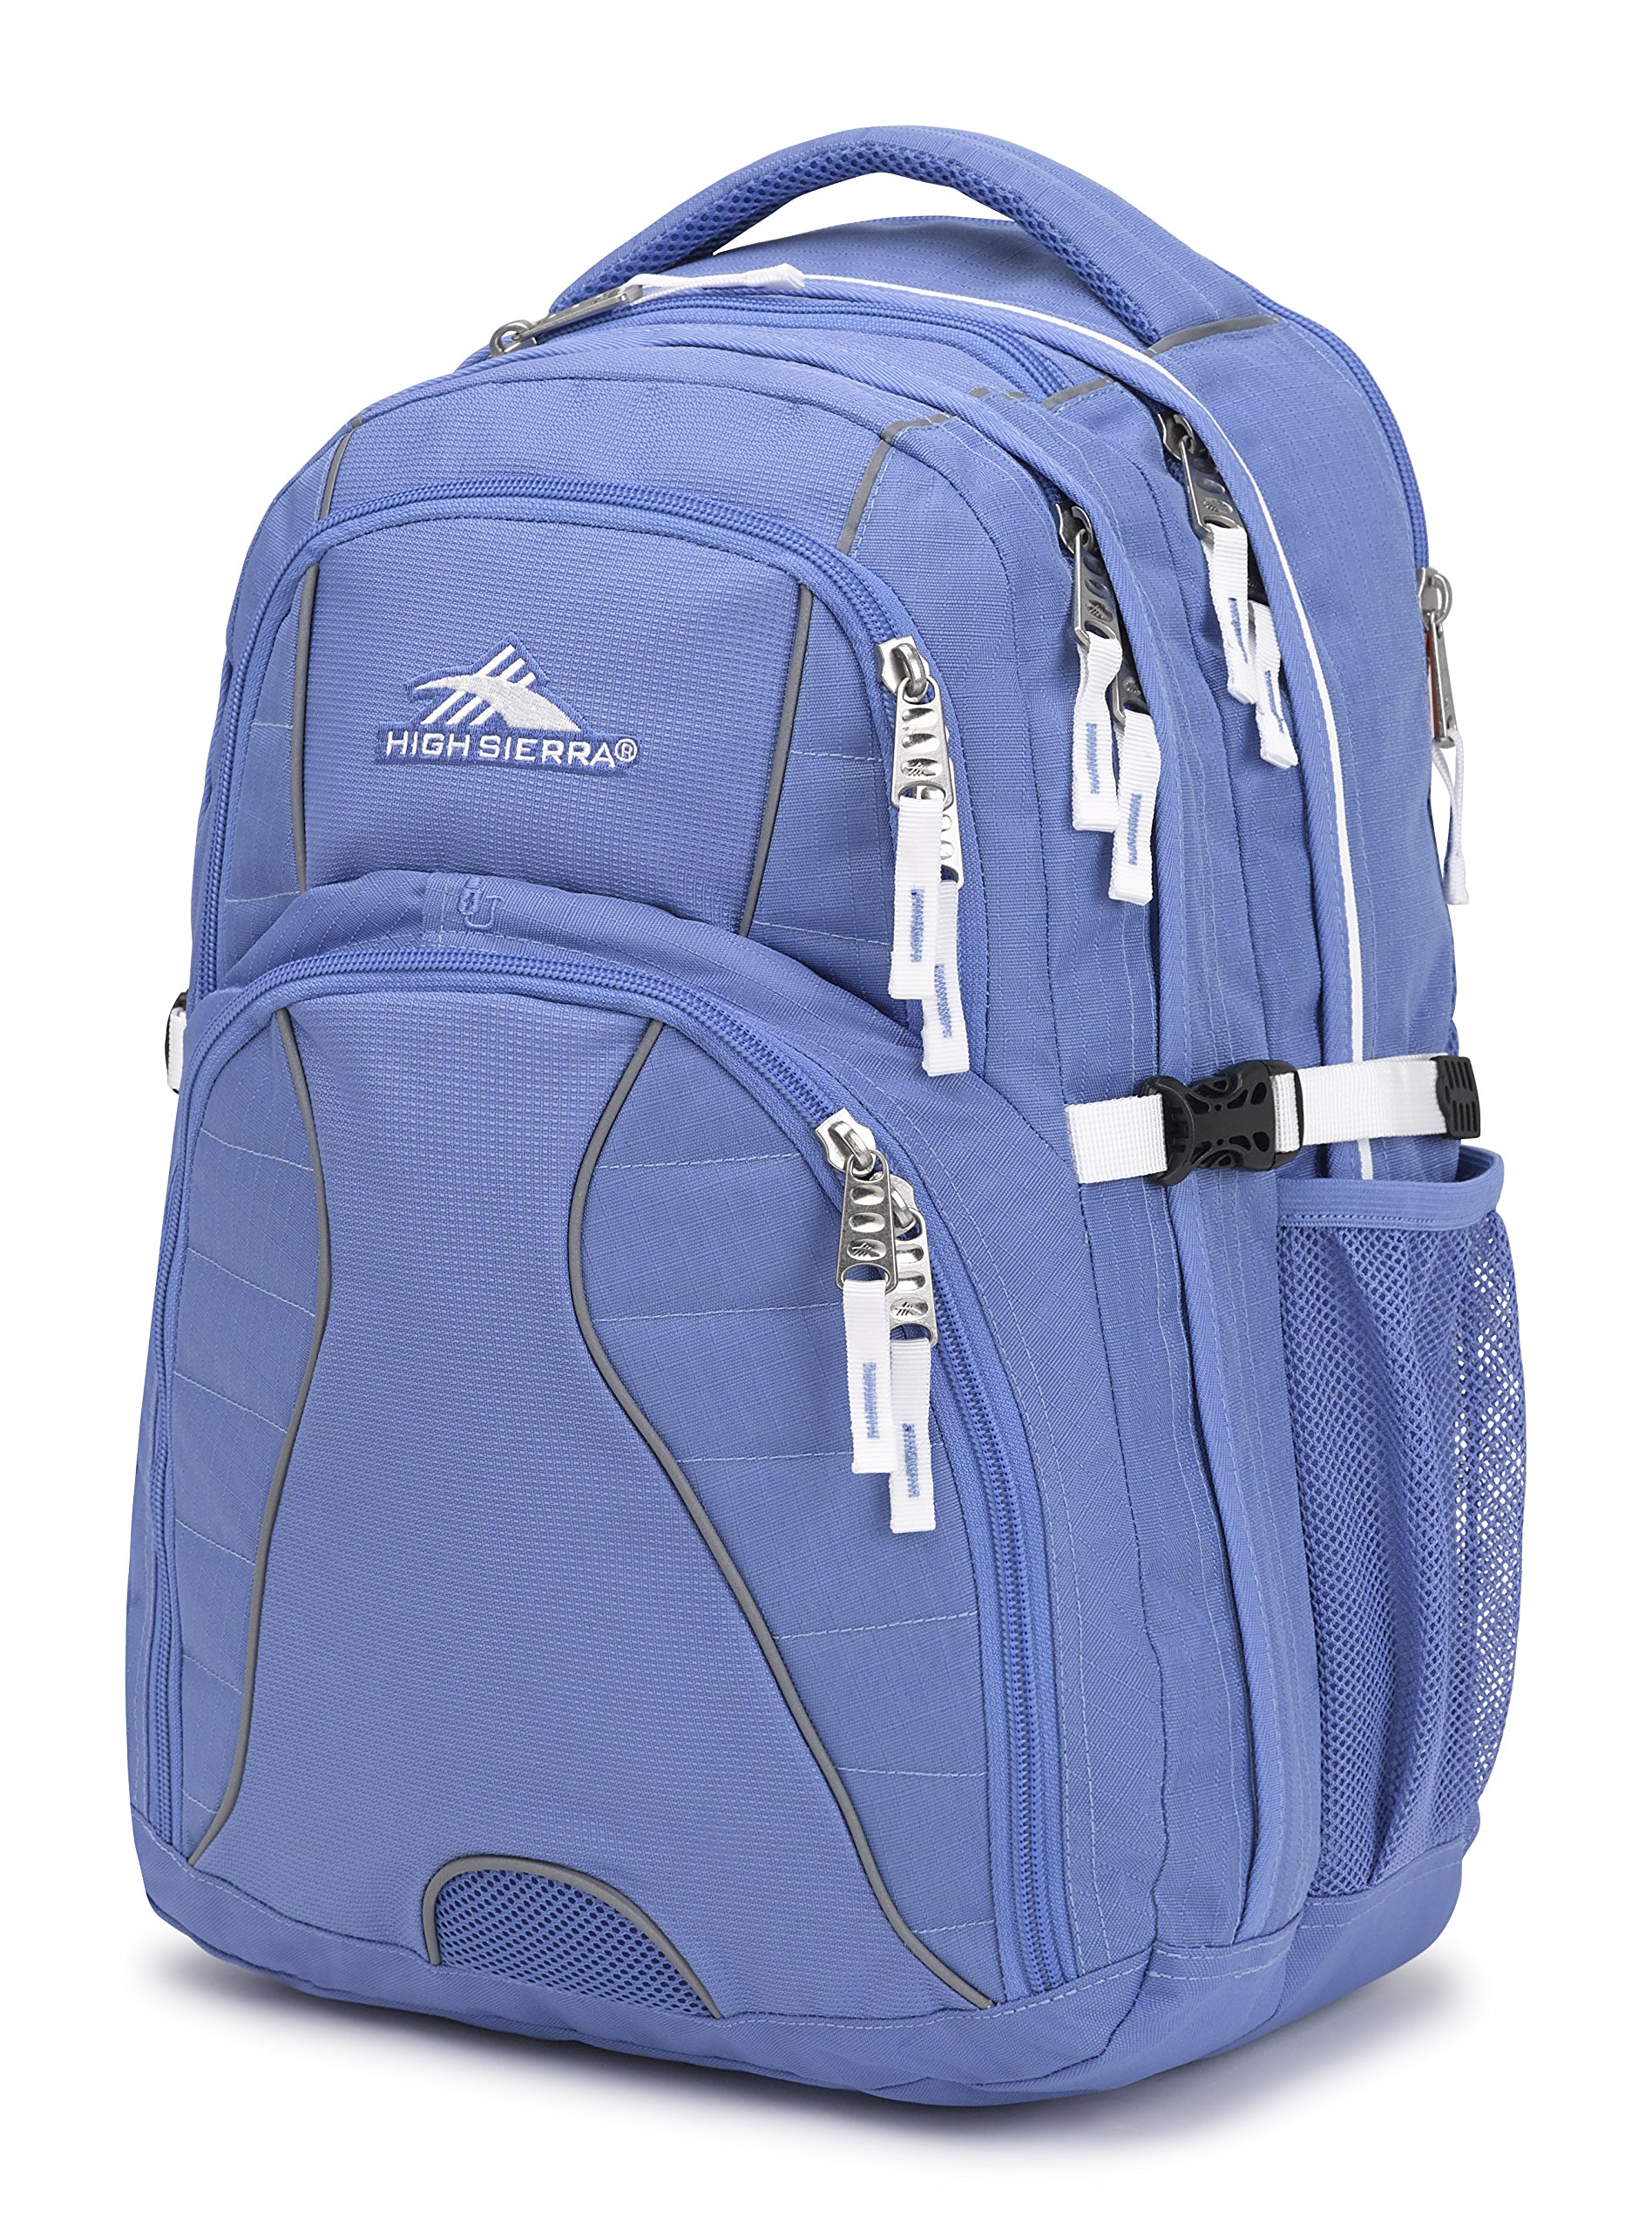 High Sierra Swerve Laptop Backpack, Lapis/White